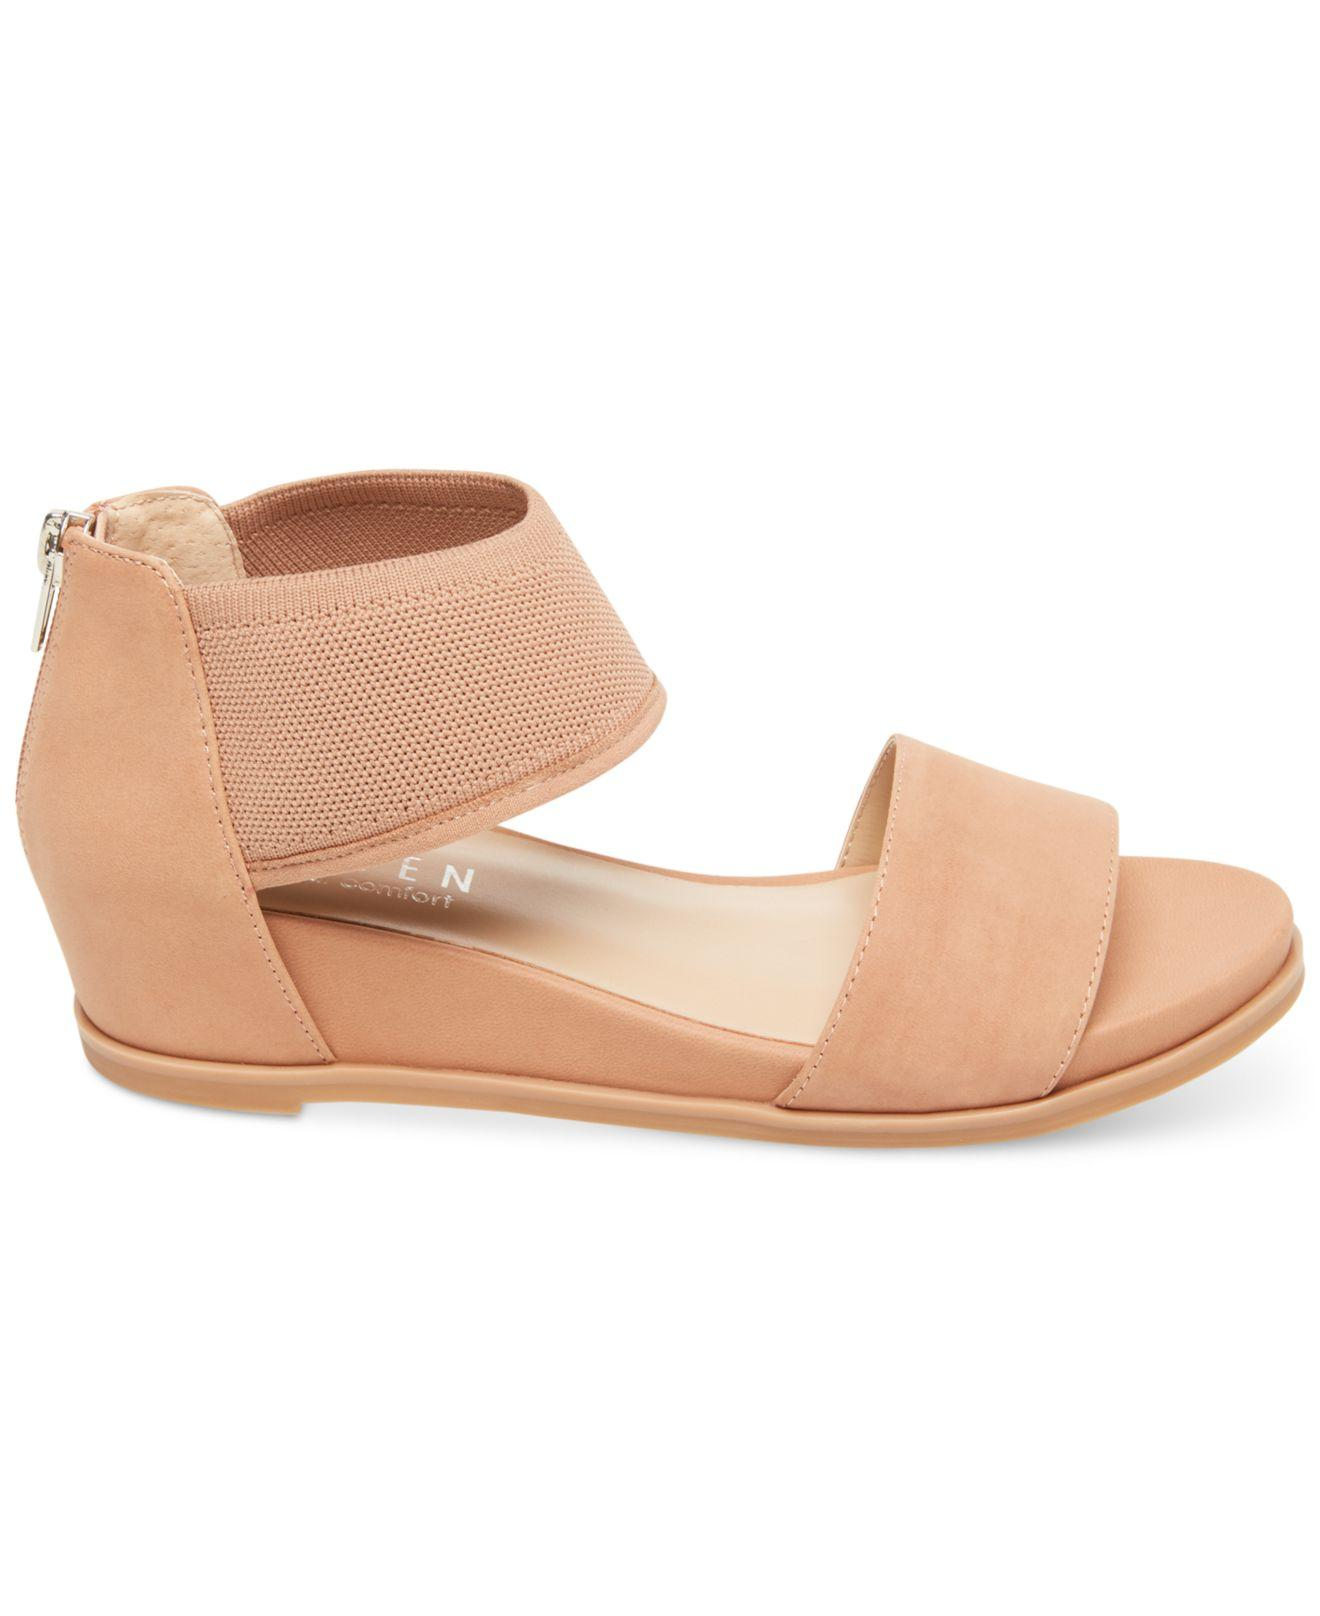 2f9aaf76452f6 Steven by Steve Madden Evie Wedges - Save 29% - Lyst